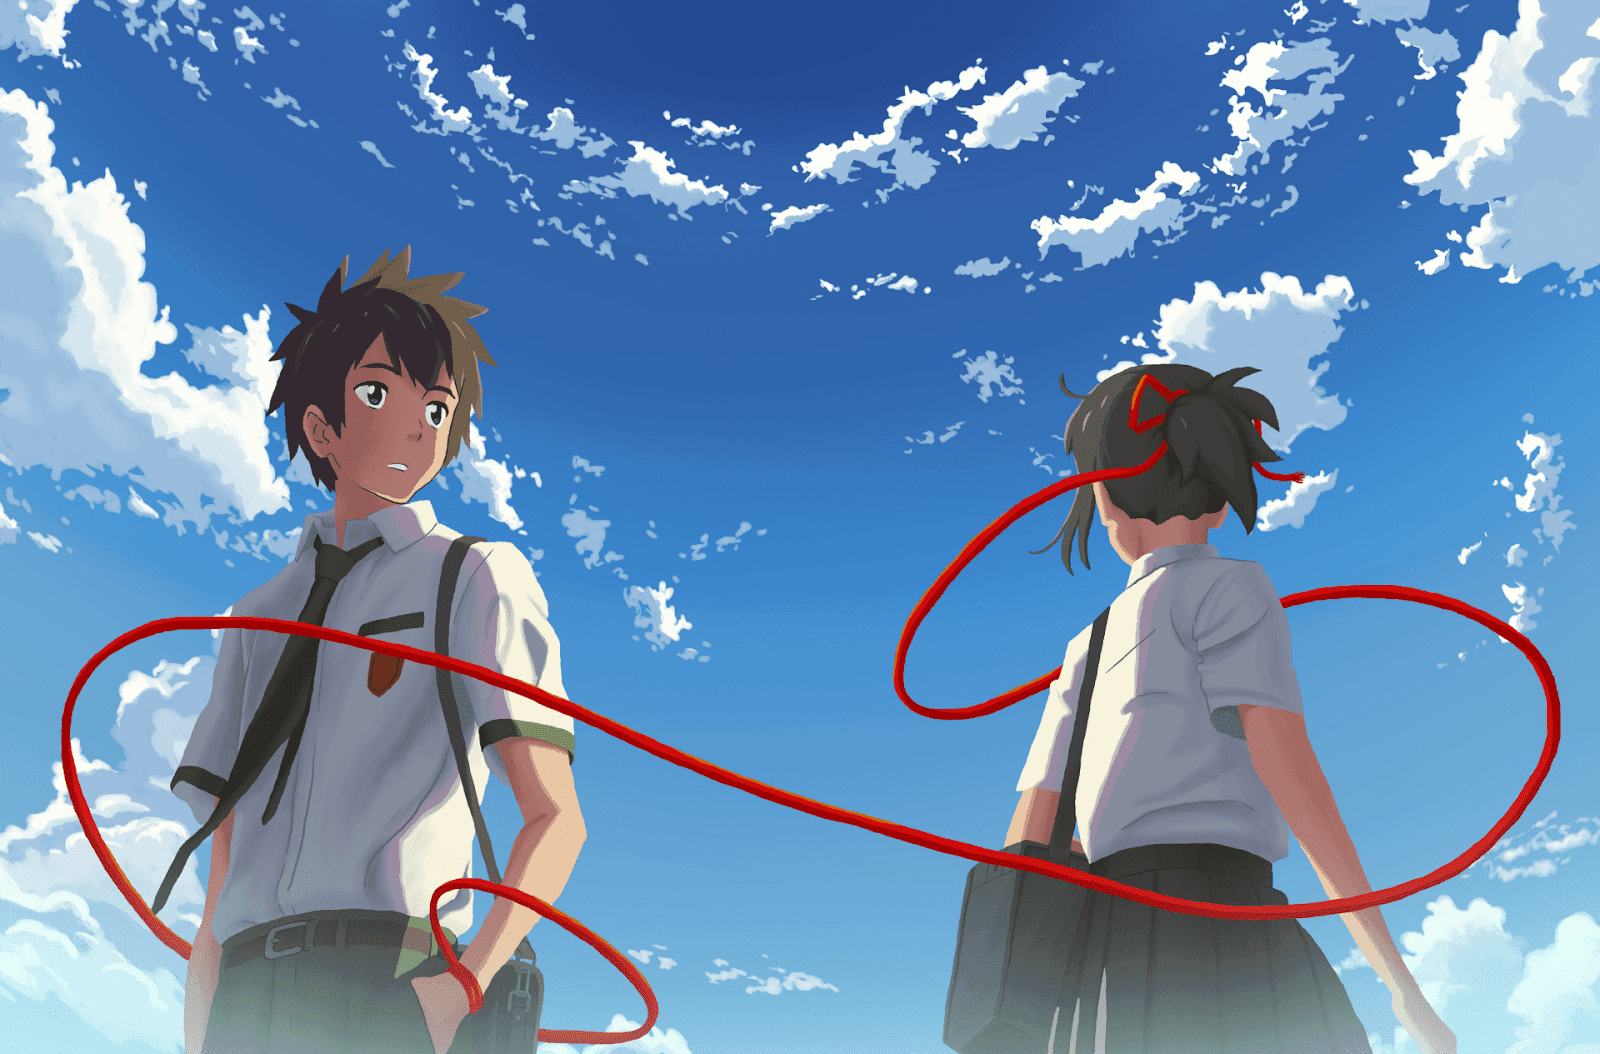 AowVN%2B%252854%2529 - [ Hình Nền ] Anime Your Name. - Kimi no Nawa full HD cực đẹp | Anime Wallpaper